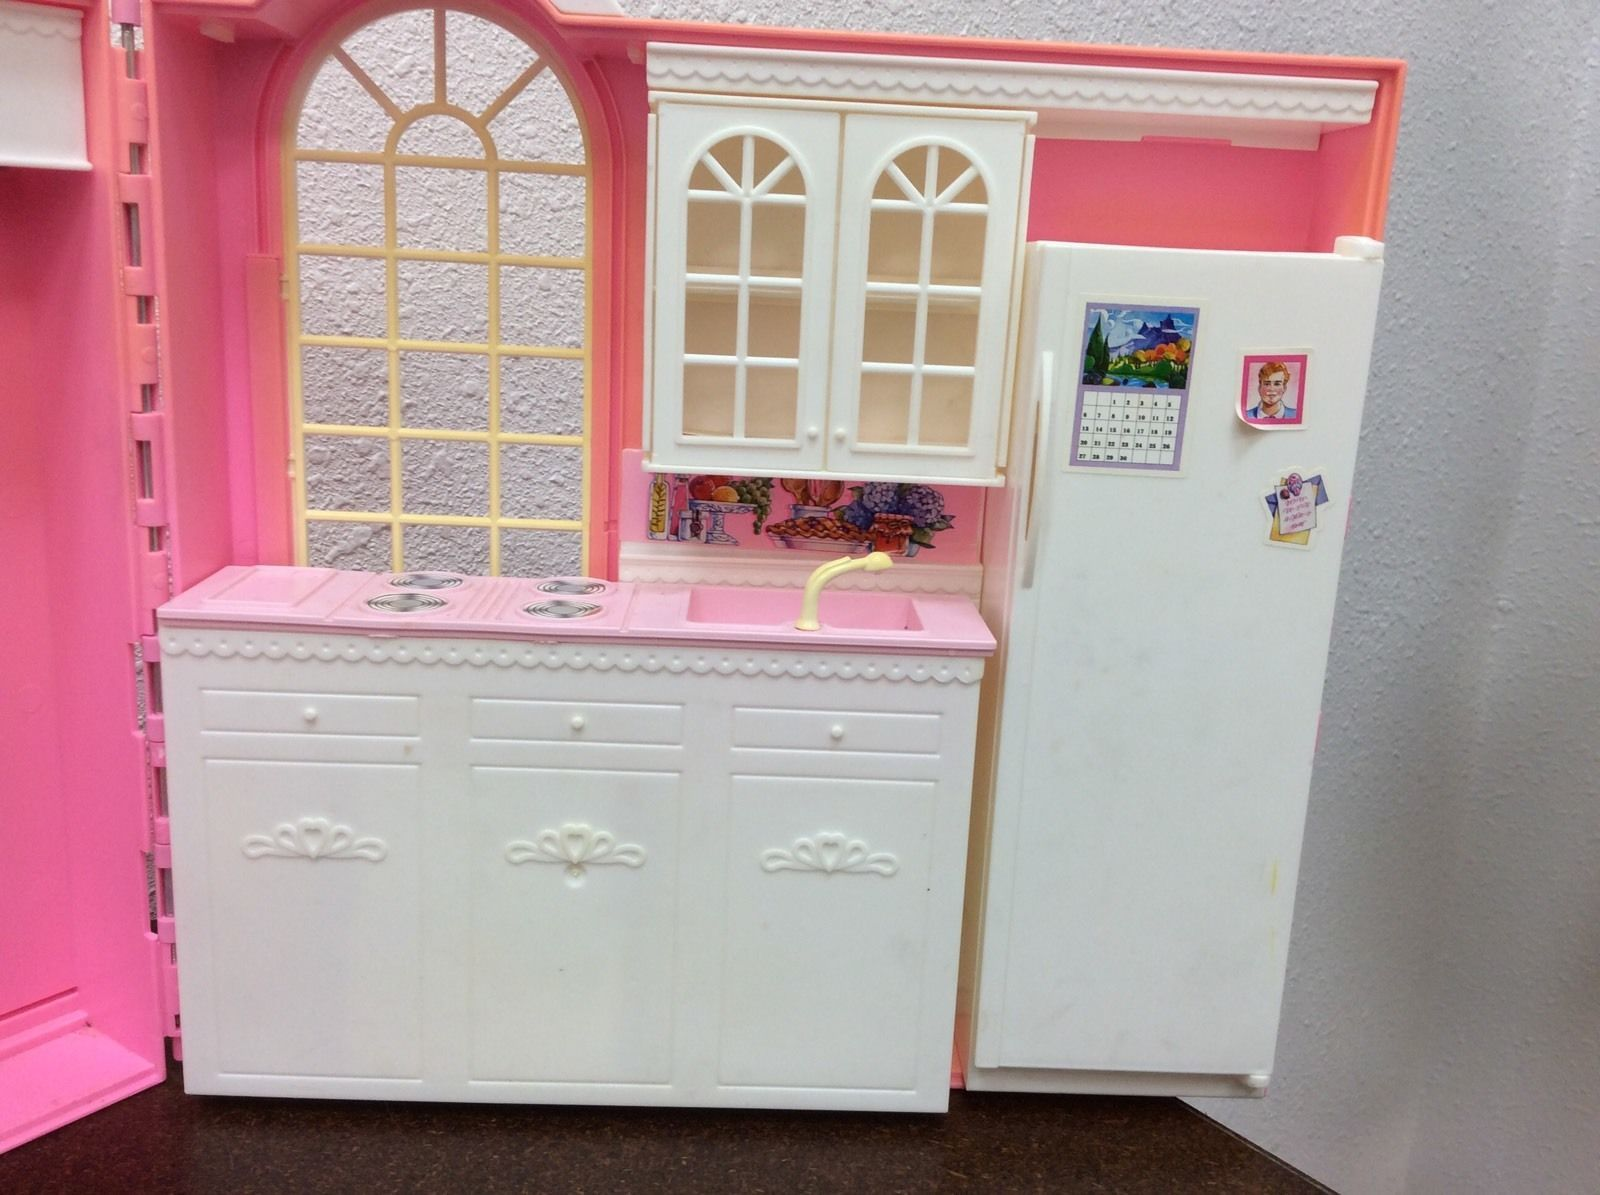 1998 MATTEL BARBIE MAGIC KITCHEN 18900 with accessories Instructions ...